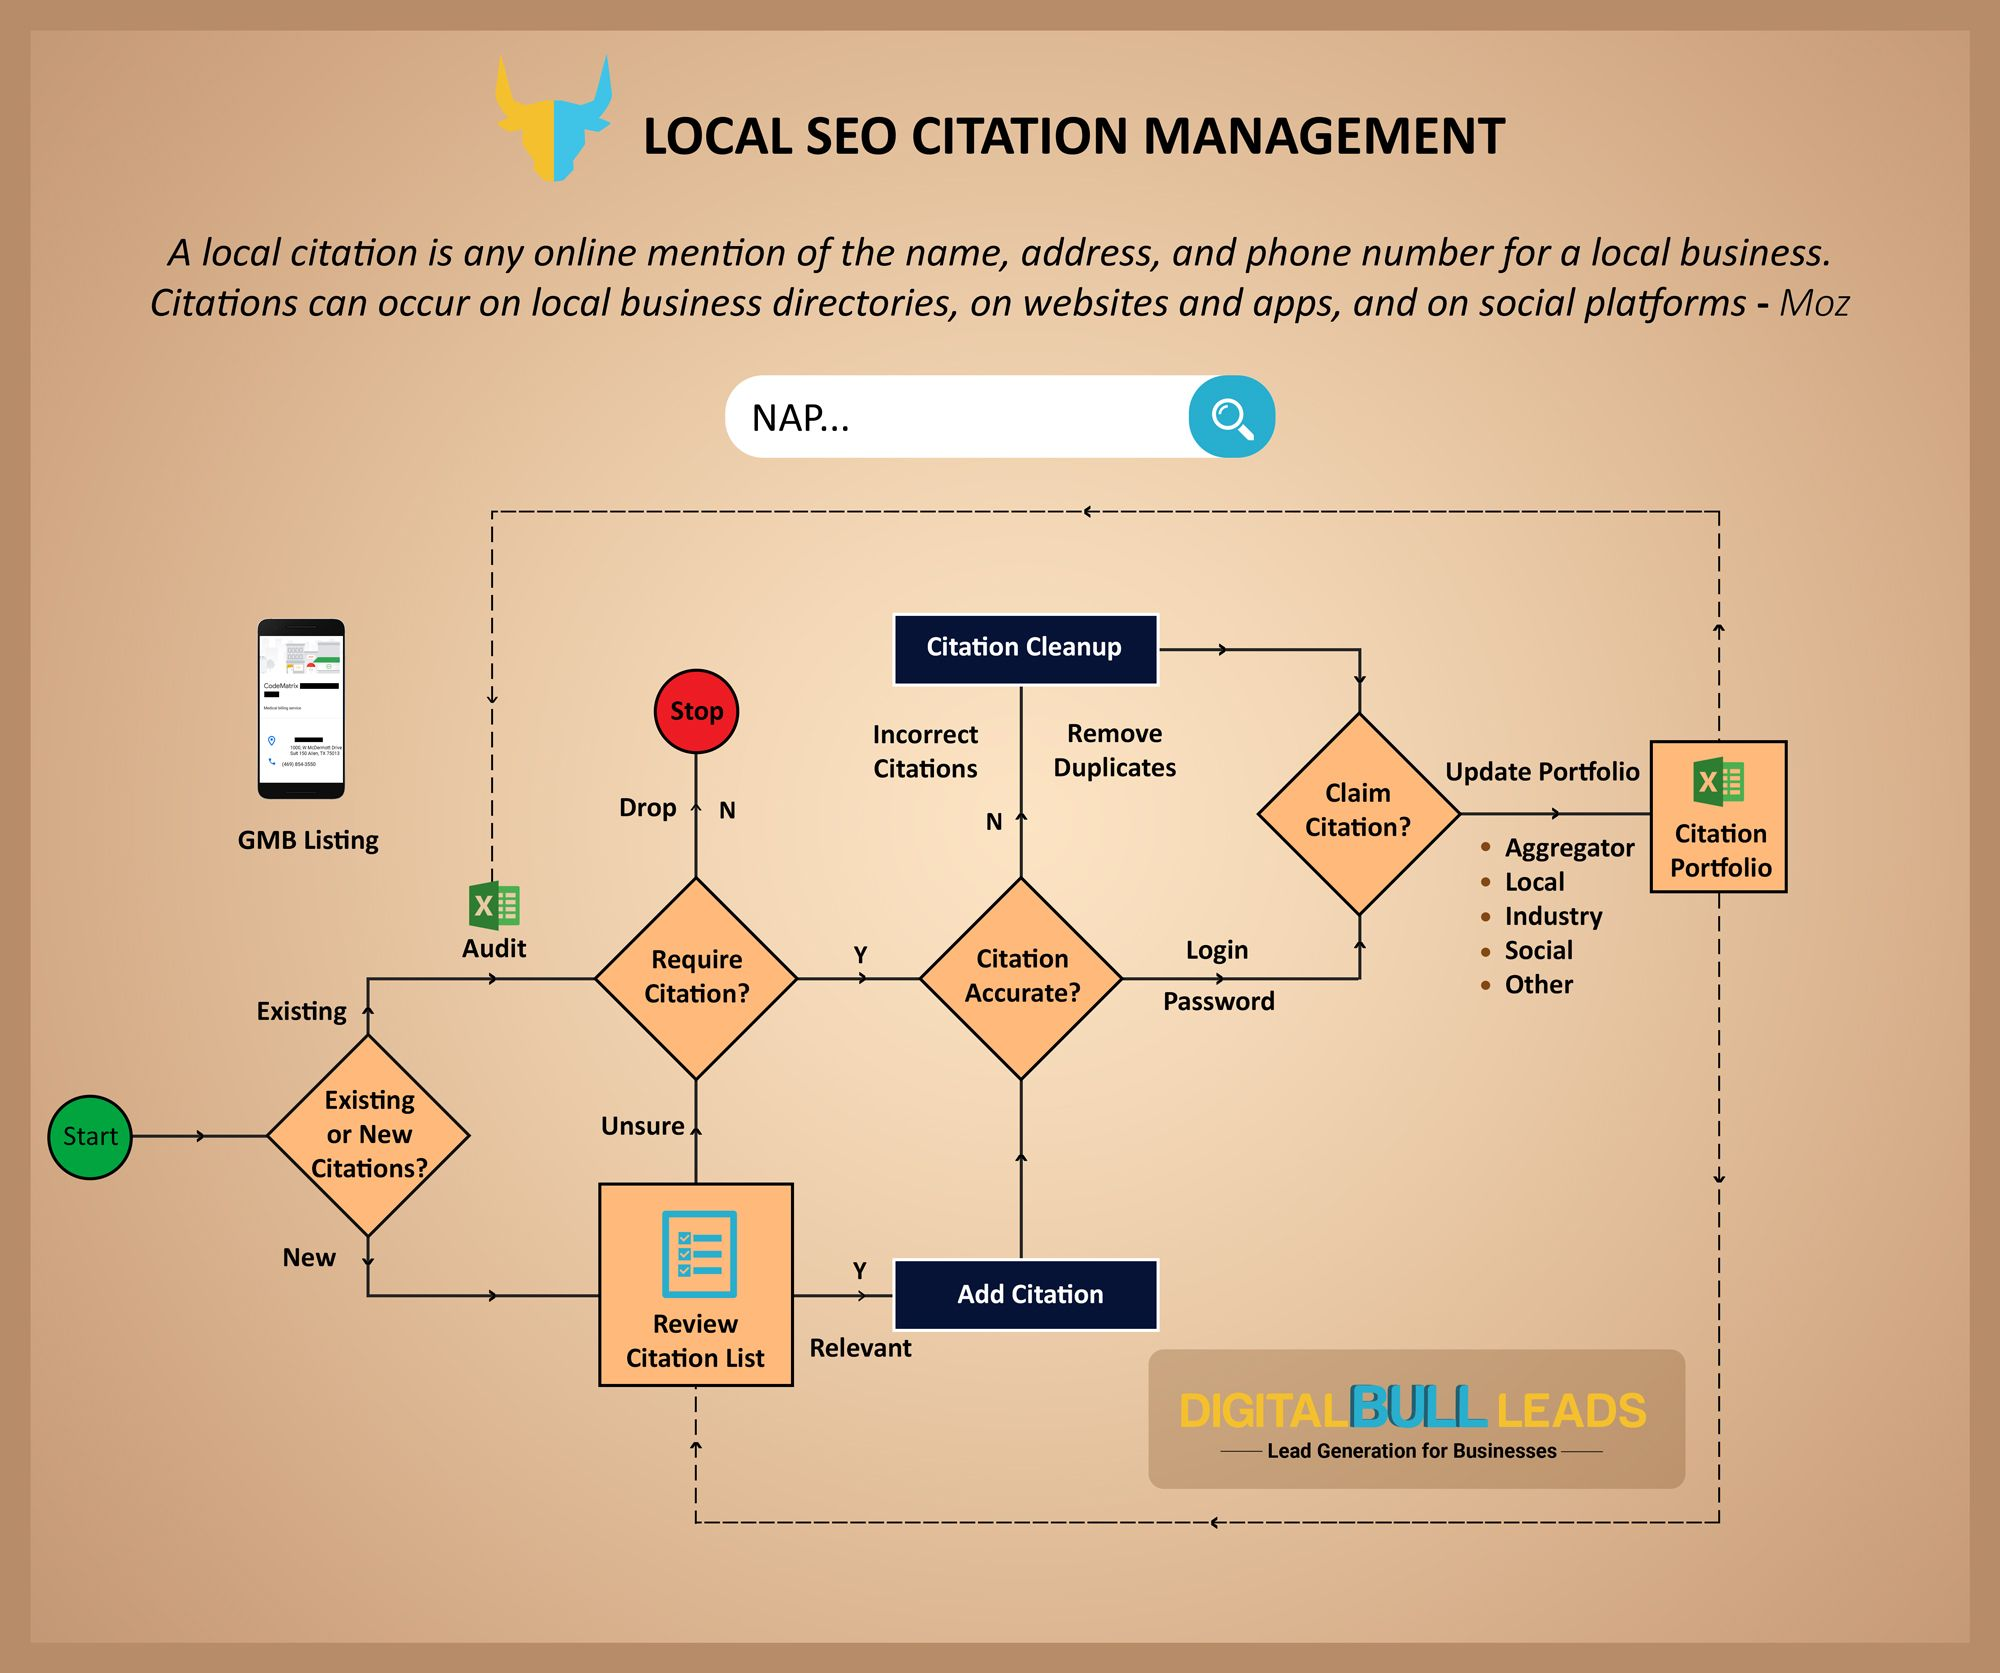 digitalbullleads local seo citation management